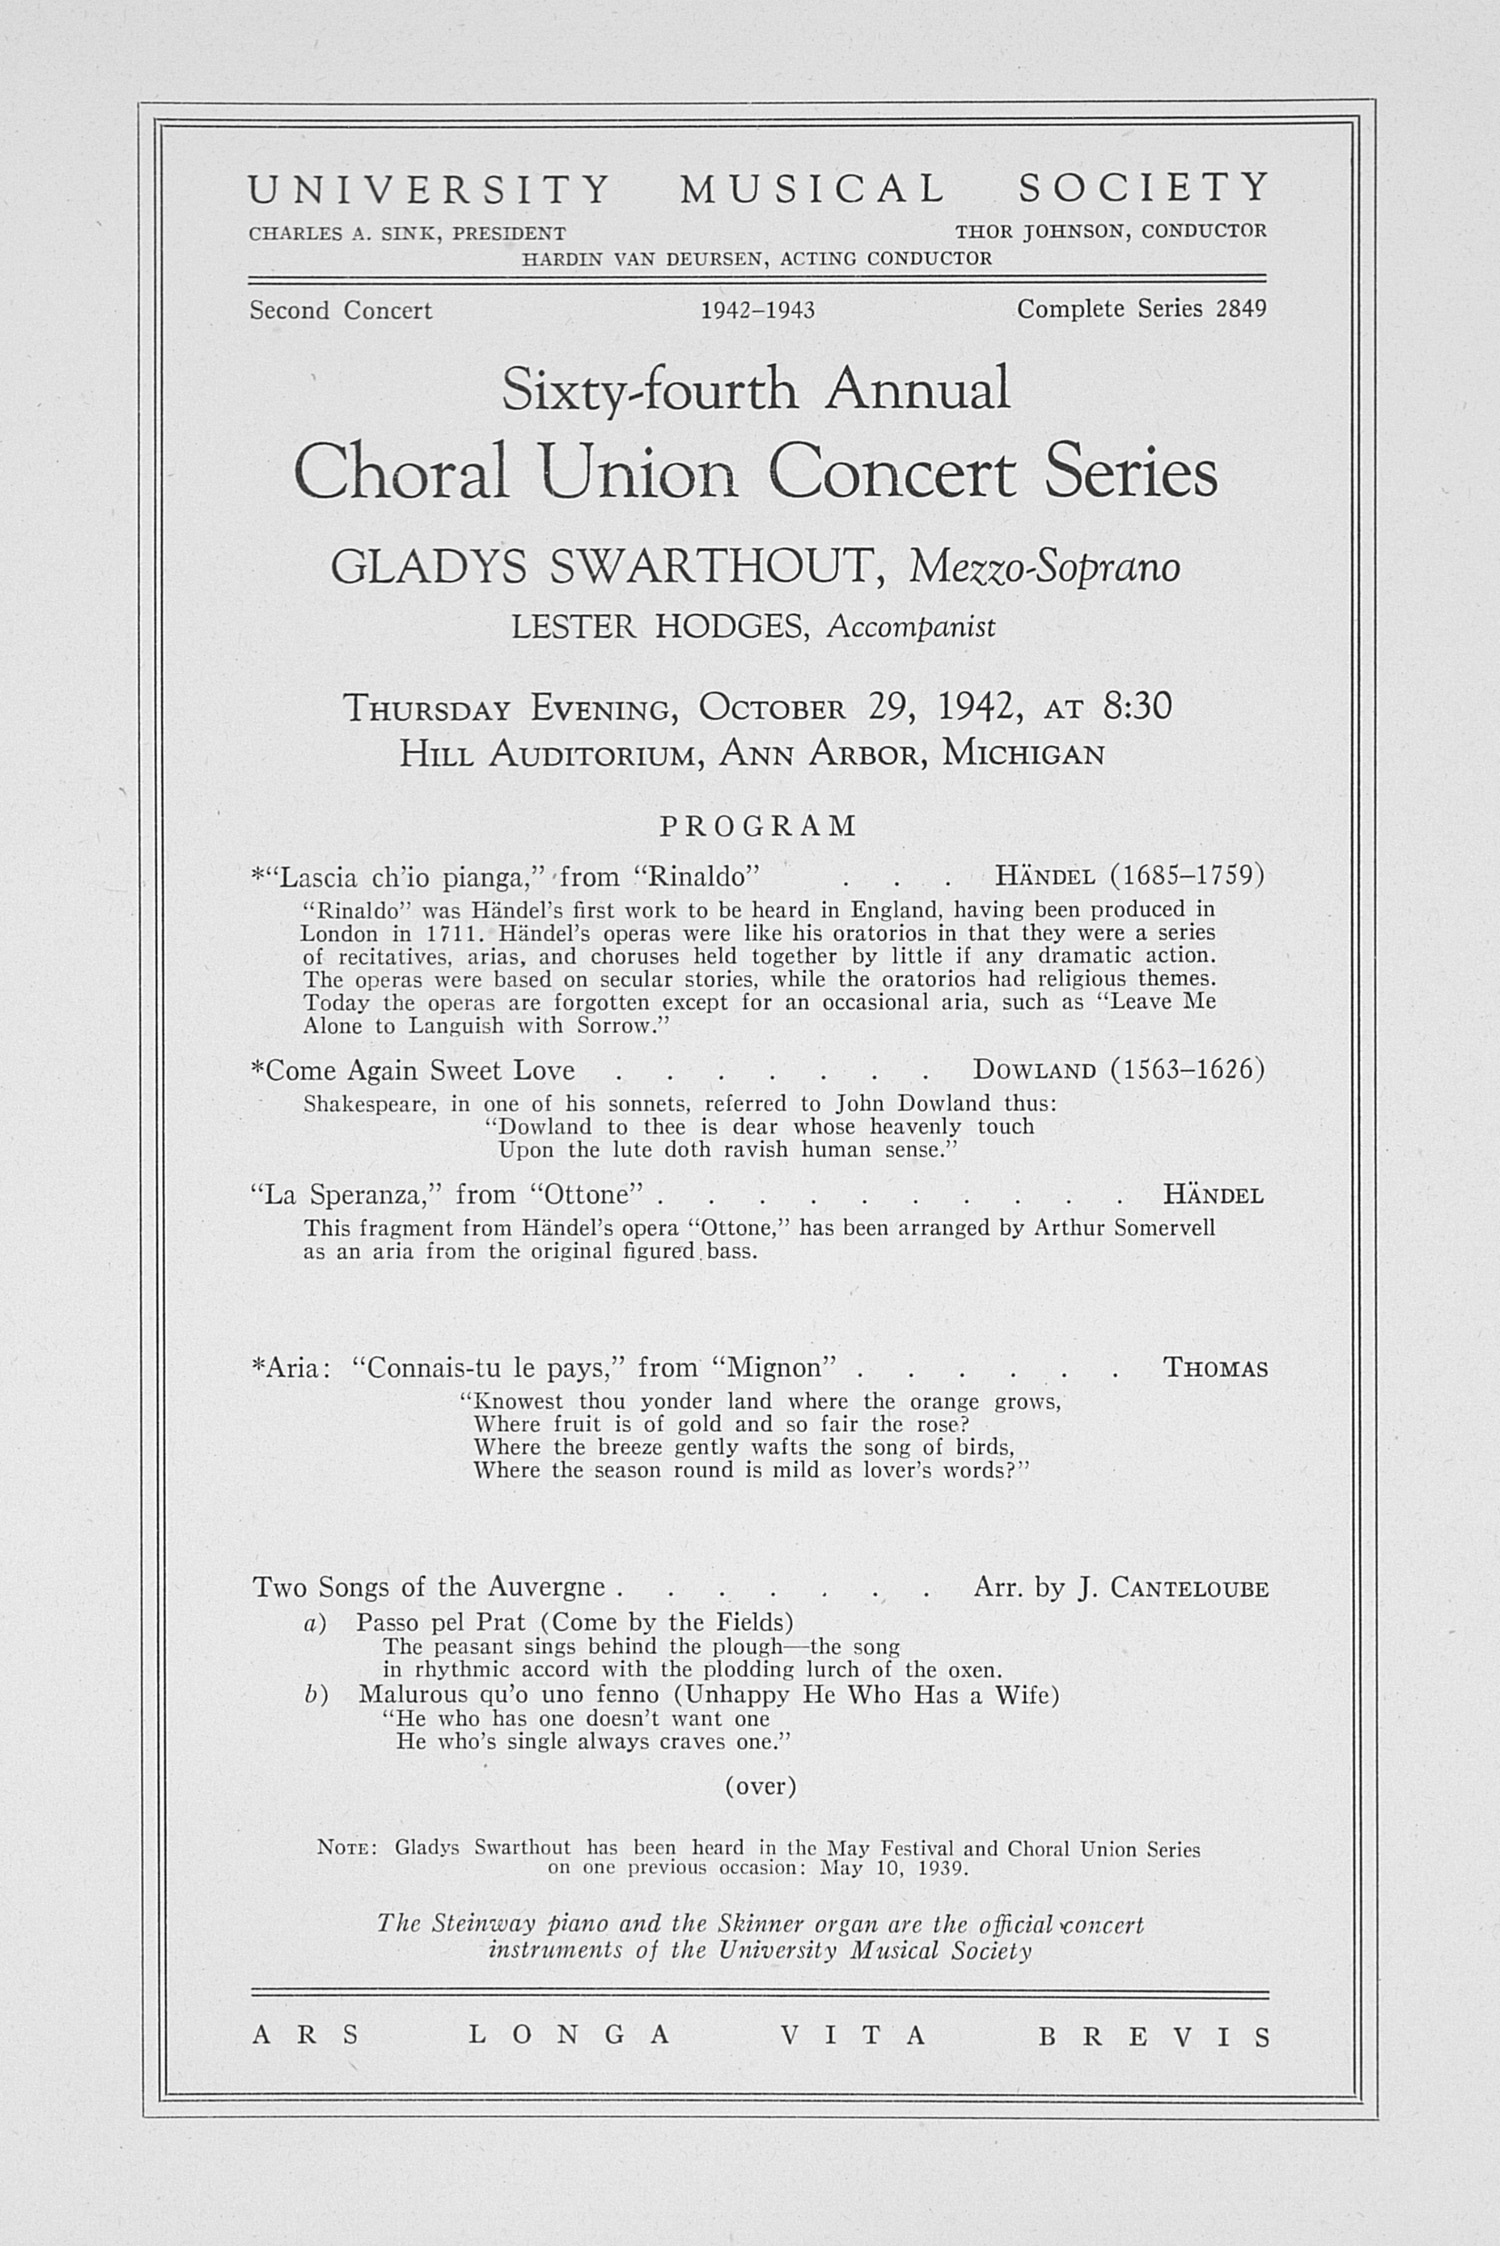 UMS Concert Program, October 29, 1942: Sixty-fourth Annual Choral Union Concert Series -- Gladys Swarthout image